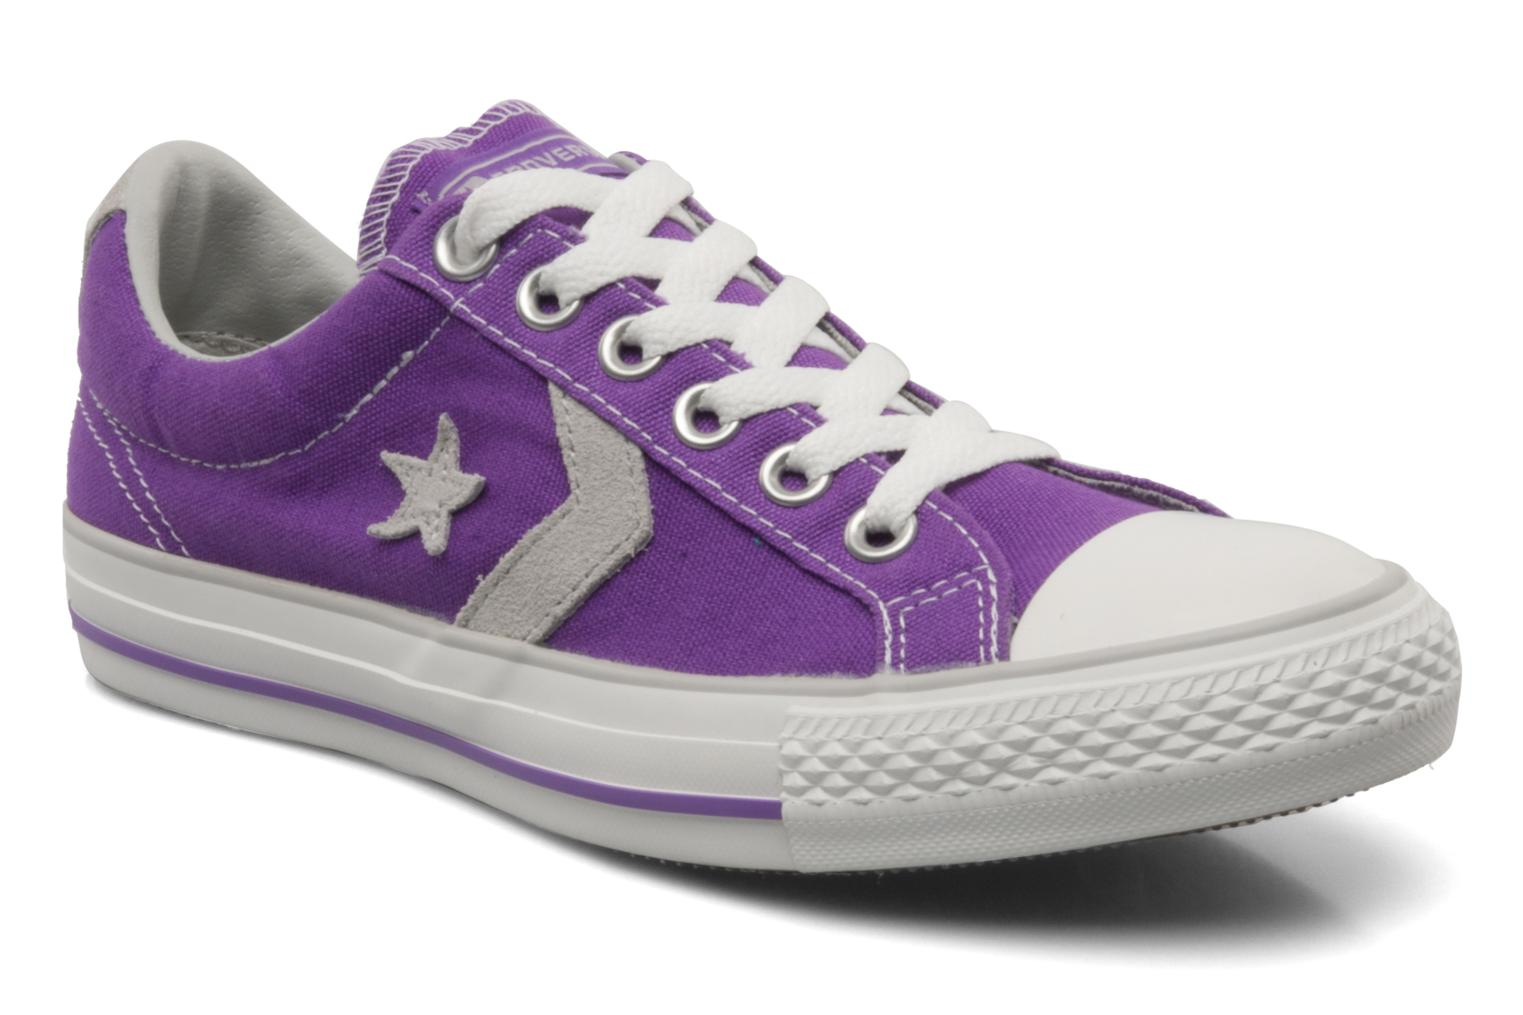 Converse Sneakers Deportivas Star Player Lila